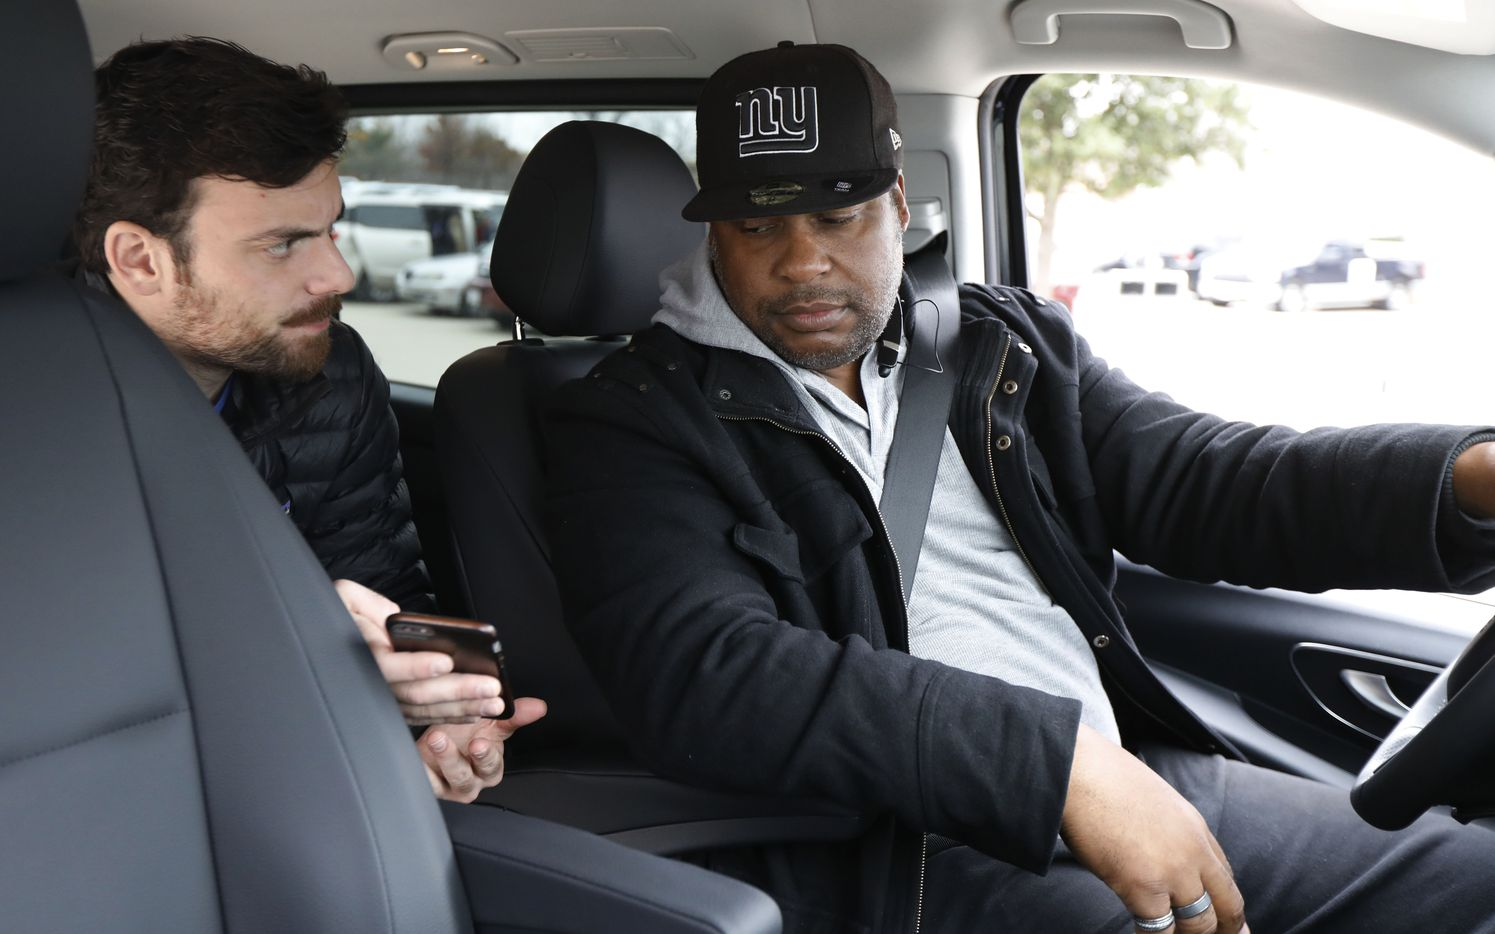 Brendan Meyer checks his app with Miles Williams, a driver for Via, at the TRE CentrePort/DFW Airport station in Fort Worth. Via would take him to AT&T Stadium in Arlington.